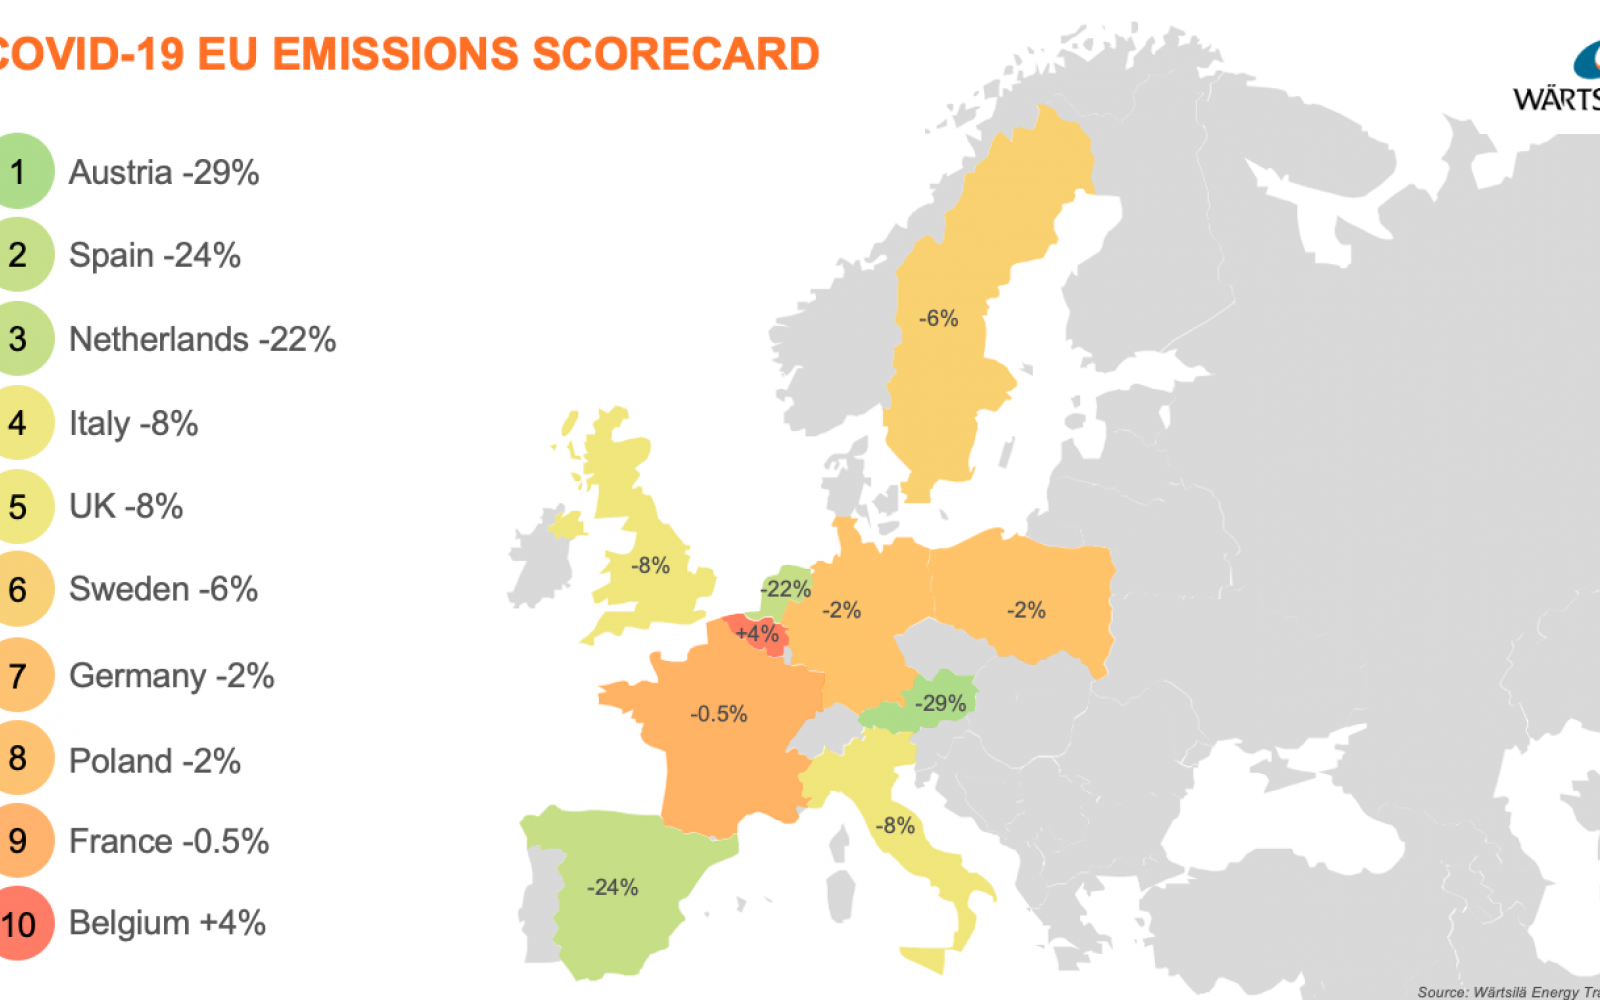 The COVID-19 European carbon scorecard. Image: Wärtsilä.